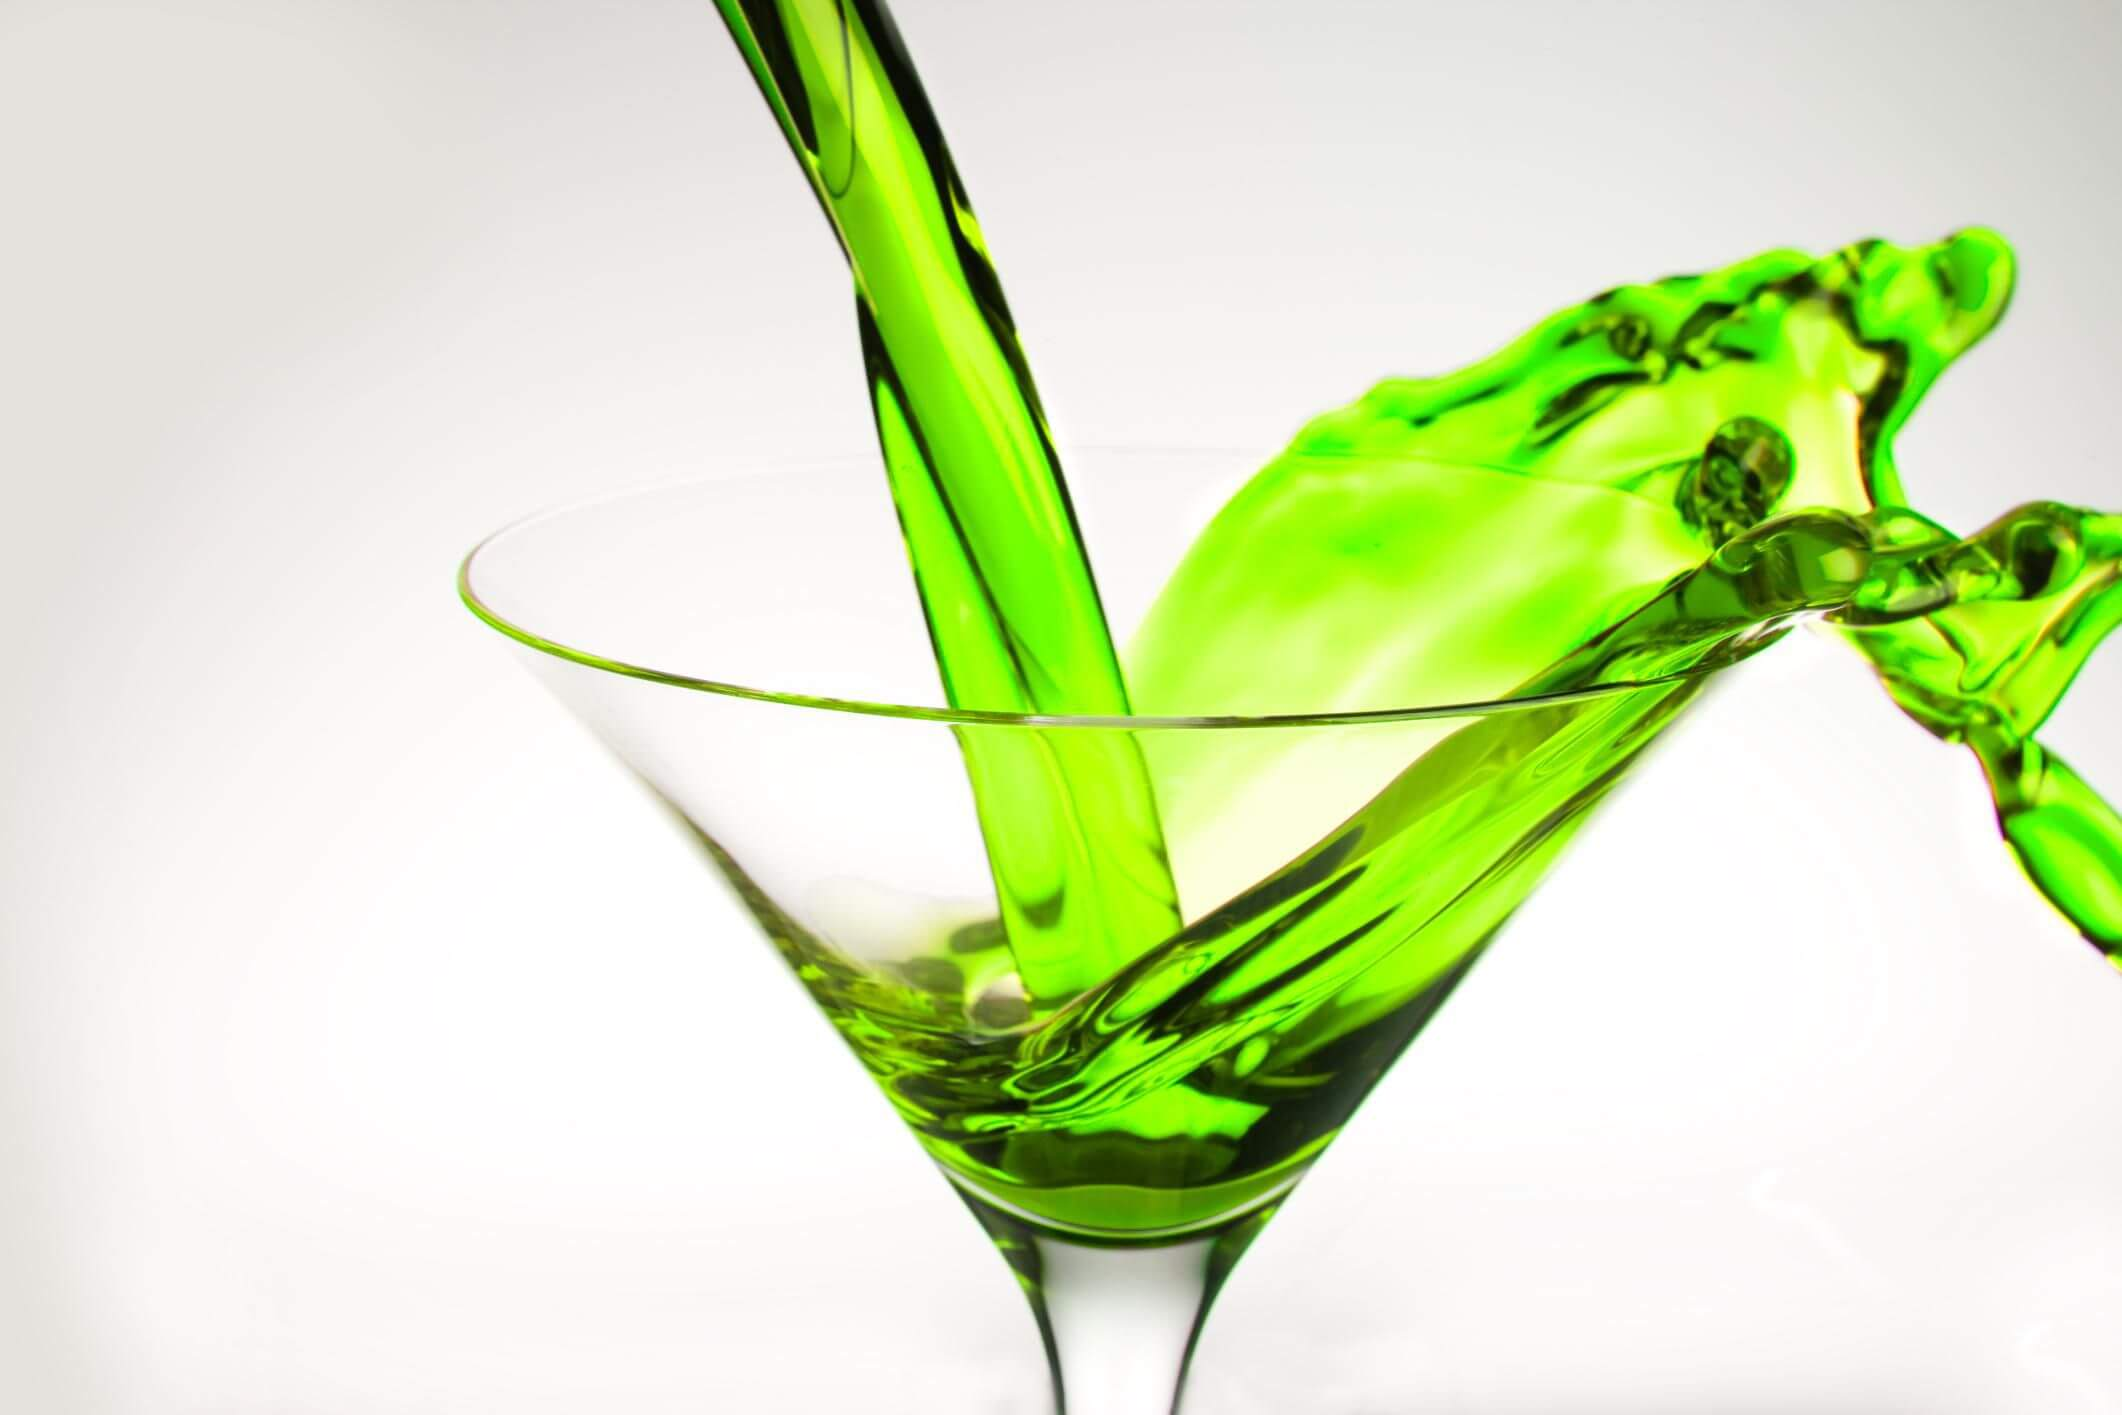 Anything in a martini glass is instantly classy